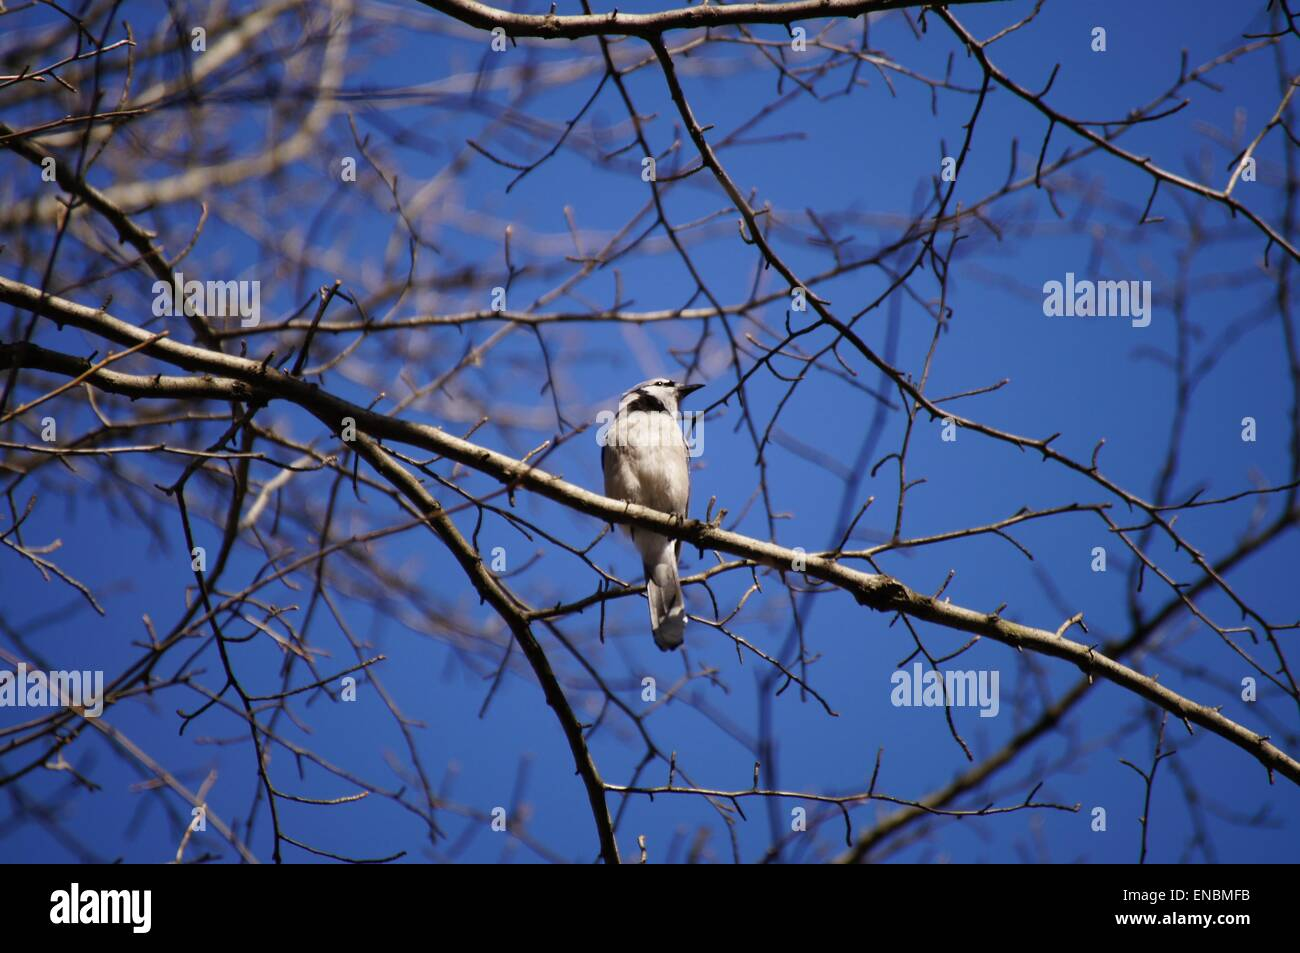 Blue jay sitting ob a tree branch, early spring. Stock Photo